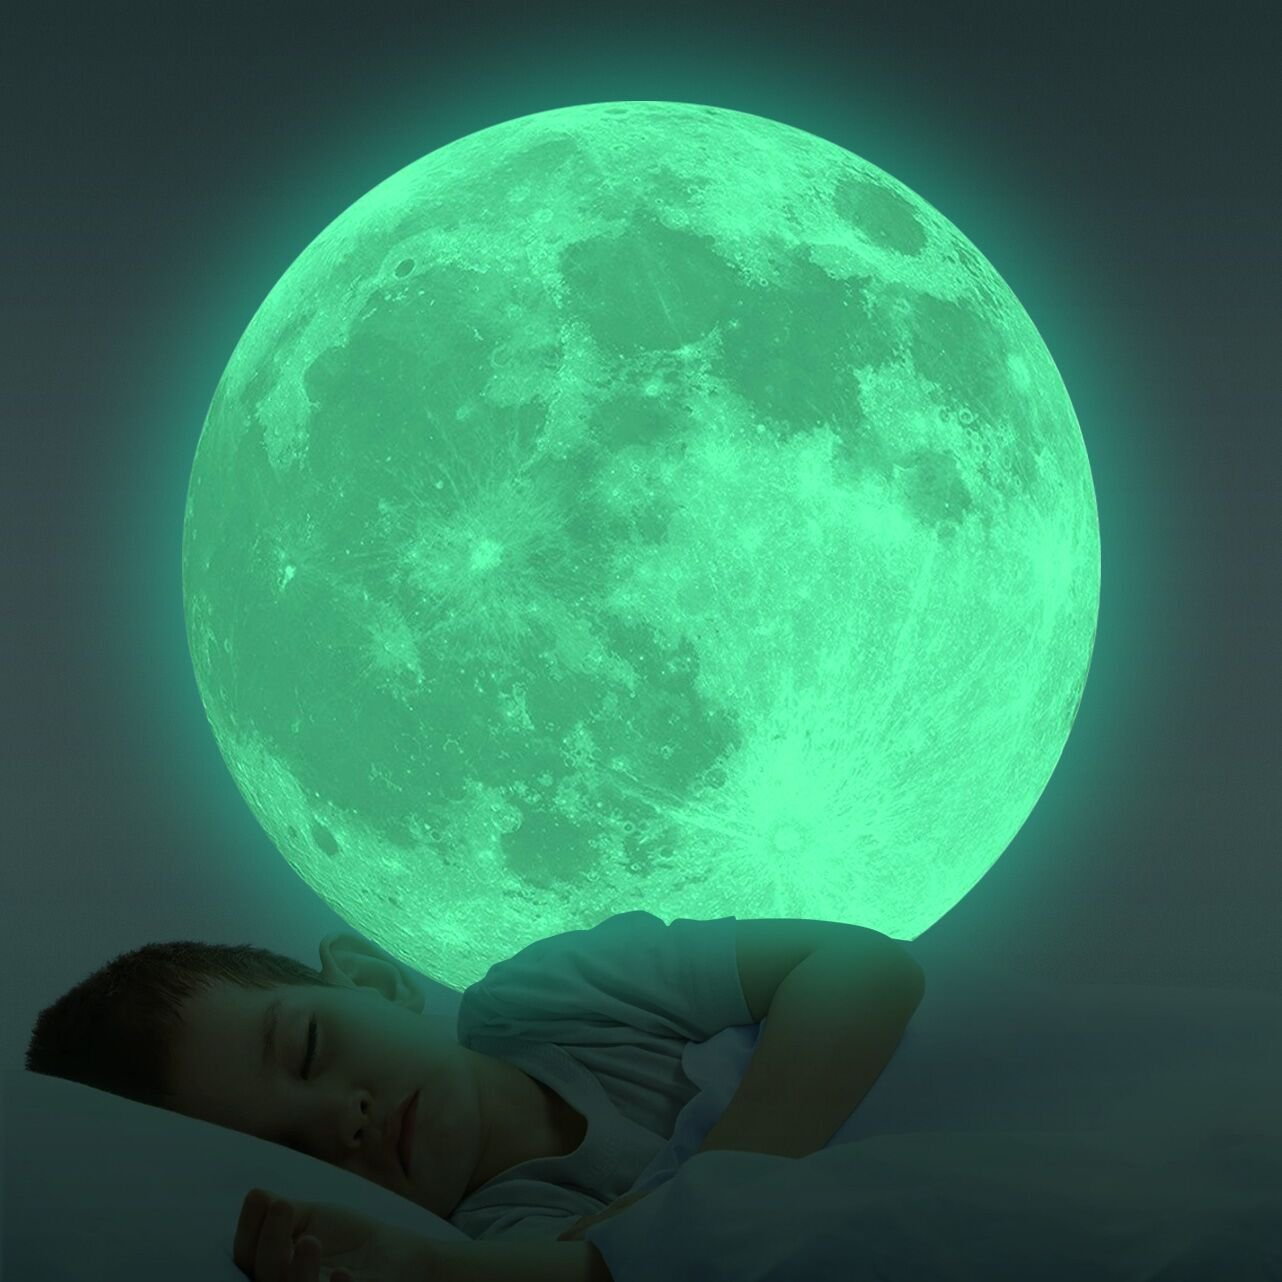 Homics Glow in The Dark Moon Wall Decals 30cm Luminous Sticker at Night, Perfect Ceiling or Wall Decor for Kids' Bedroom (Green)